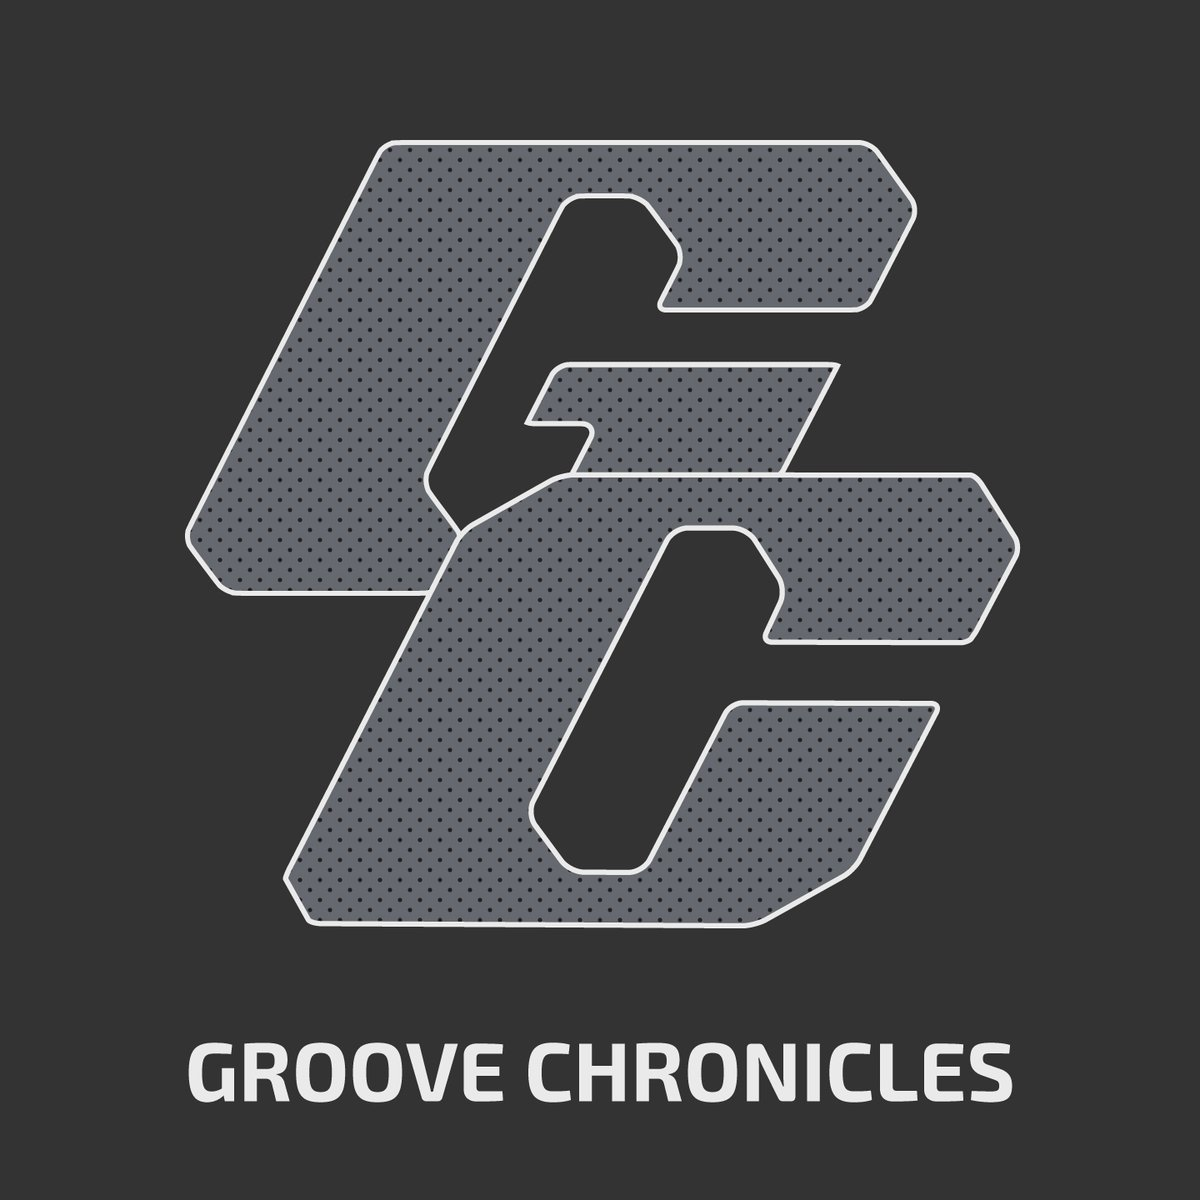 Groove Chronicles Promo's out today.. check your emails shouts too @dubchild1  #ukgarage #2step #4x4 https://t.co/na91g94mEk